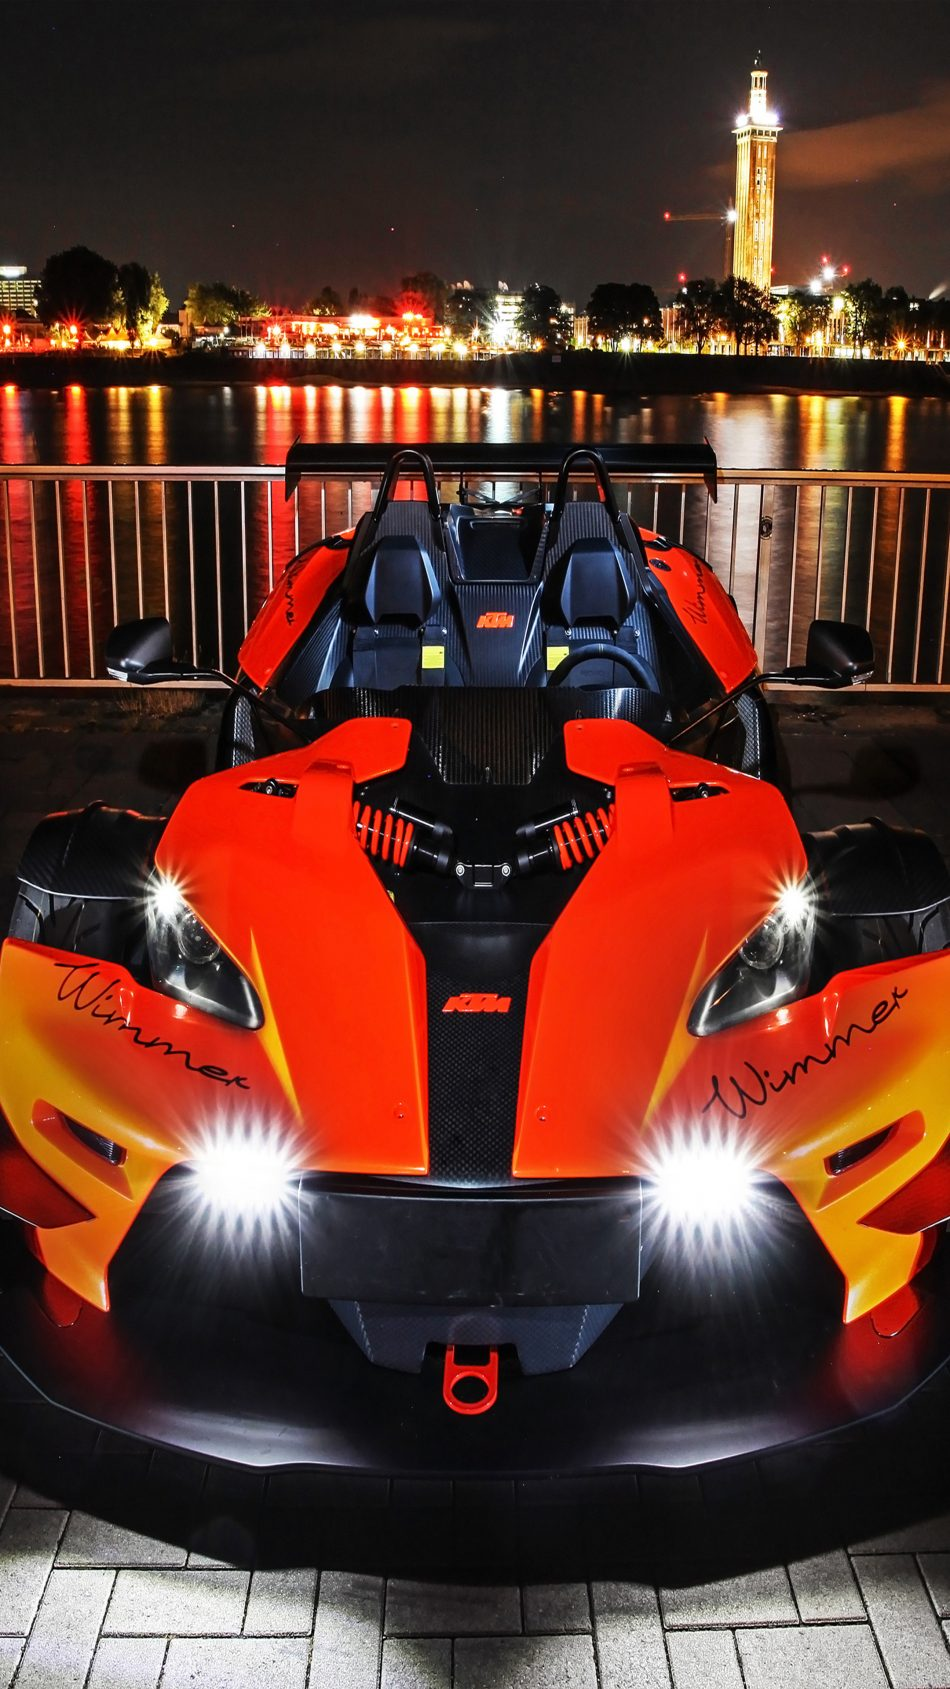 Wimmer RS KTM X-Bow R 2019 4K Ultra HD Mobile Wallpaper